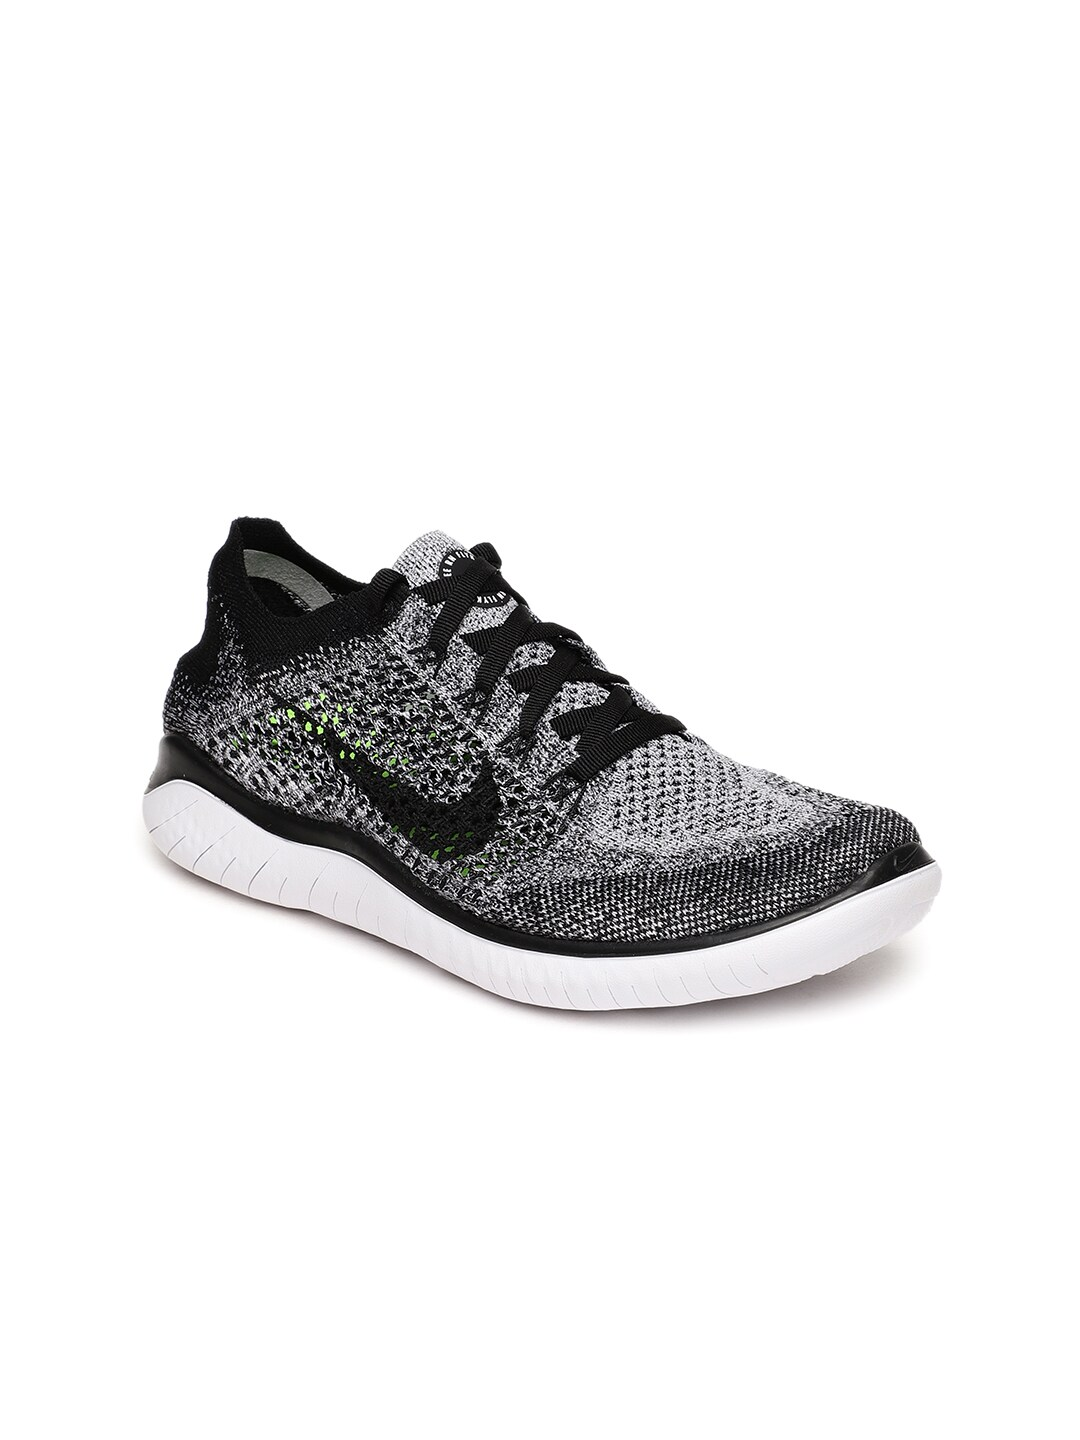 0be448db45c14 Nike Free Women - Buy Nike Free Women online in India